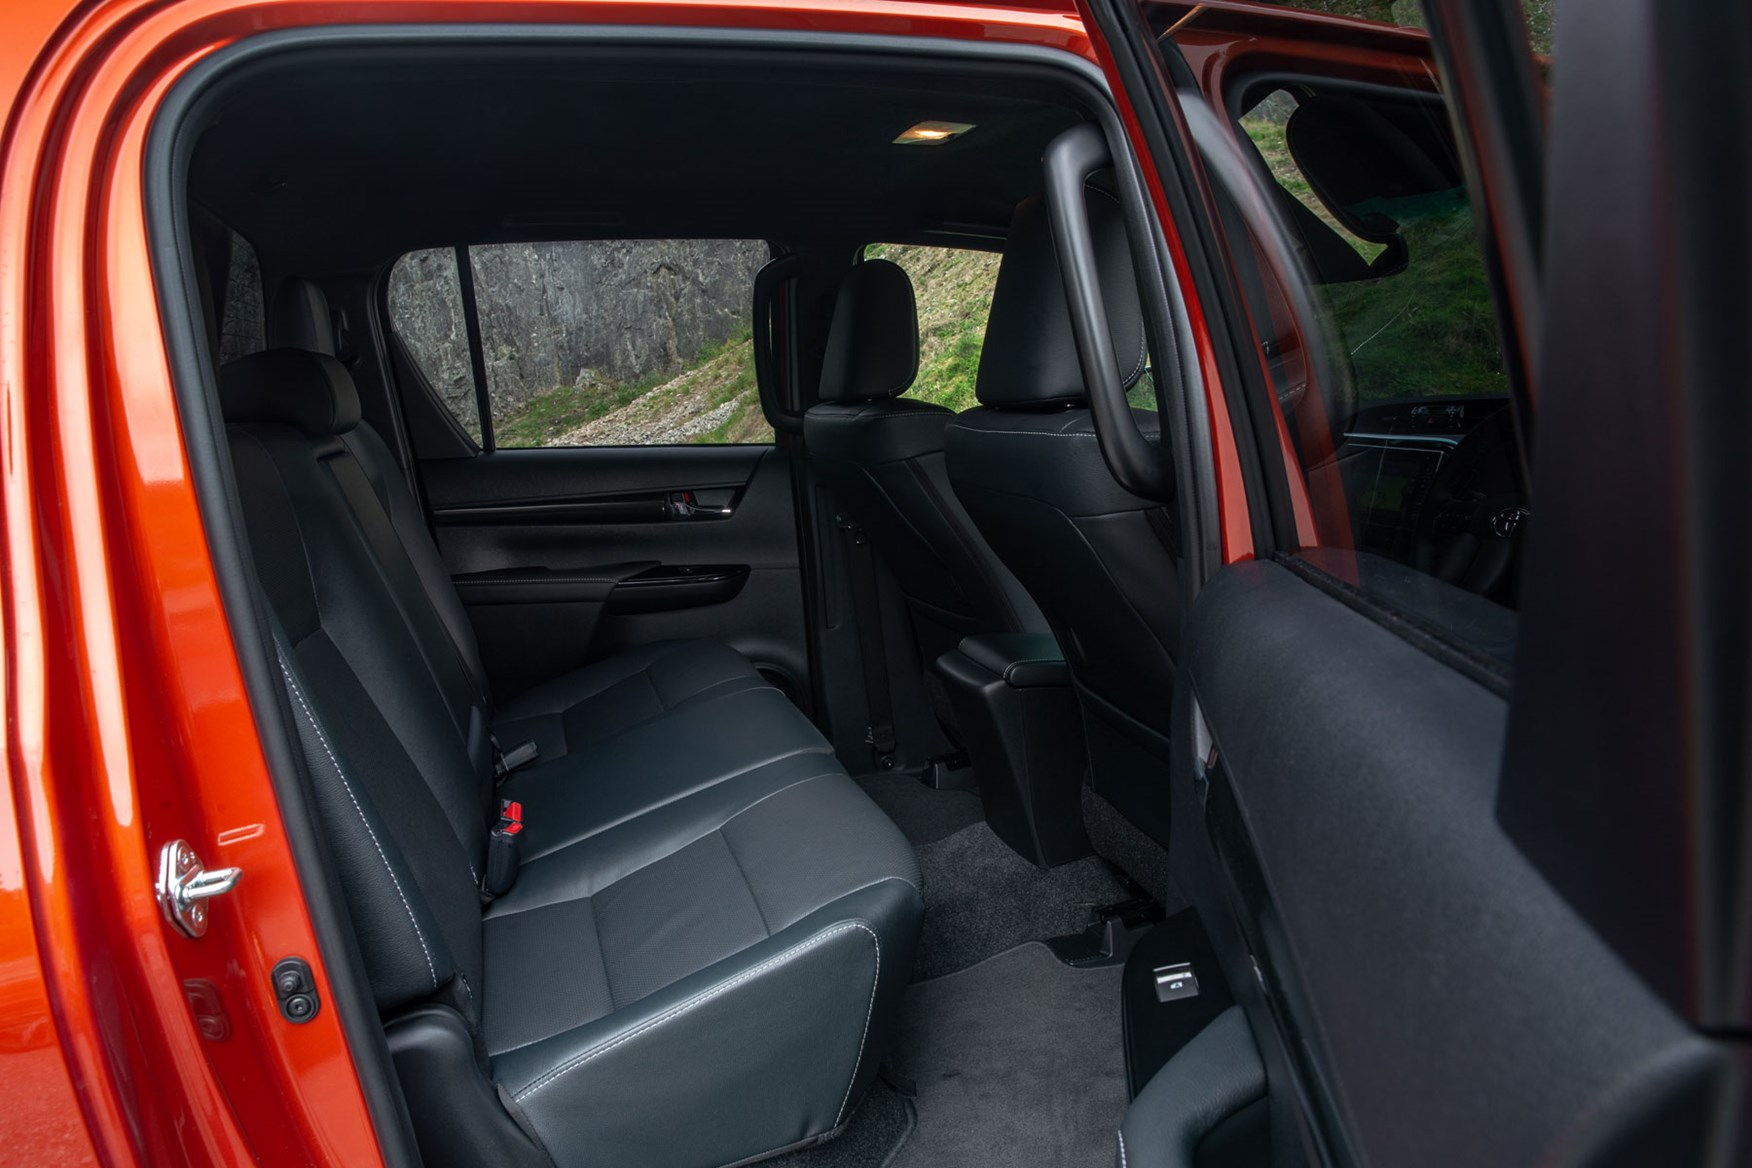 Toyota Hilux review - Double Cab rear seats and door opening